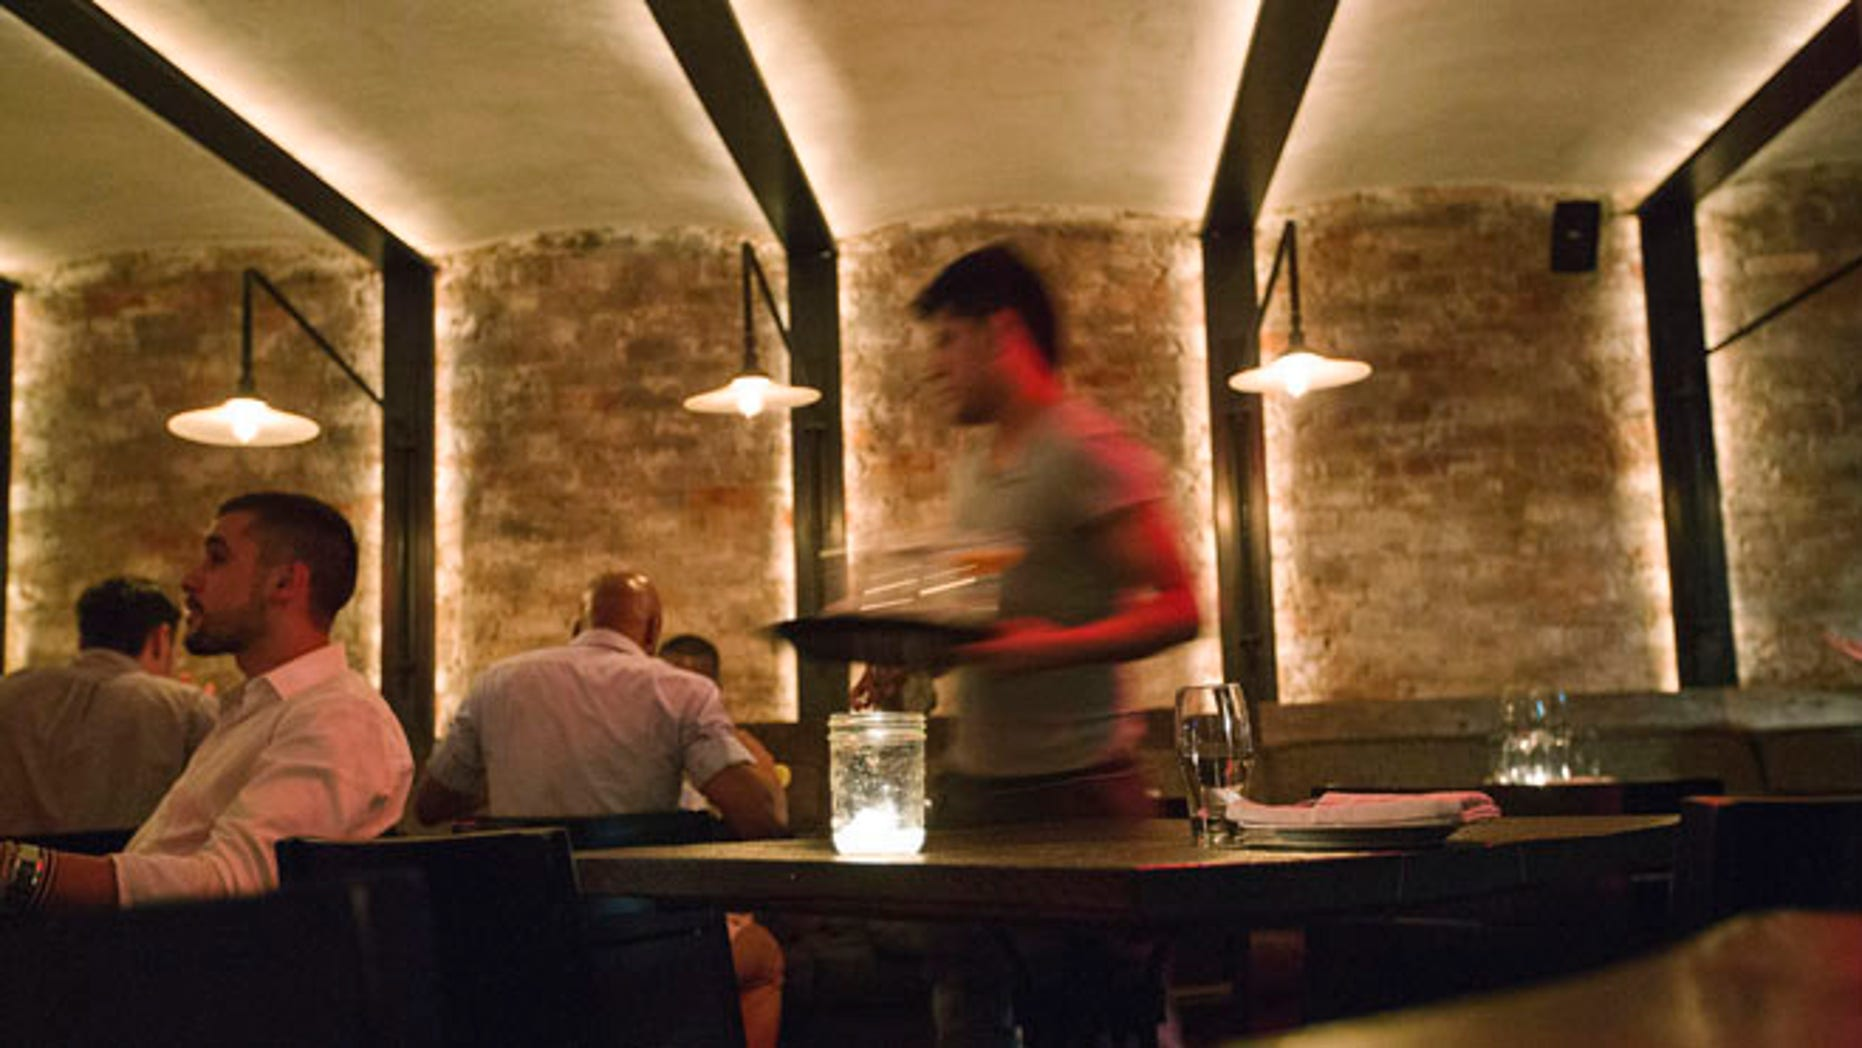 June 12, 2013: A server clears dishes from a table inside a New York restaurant.